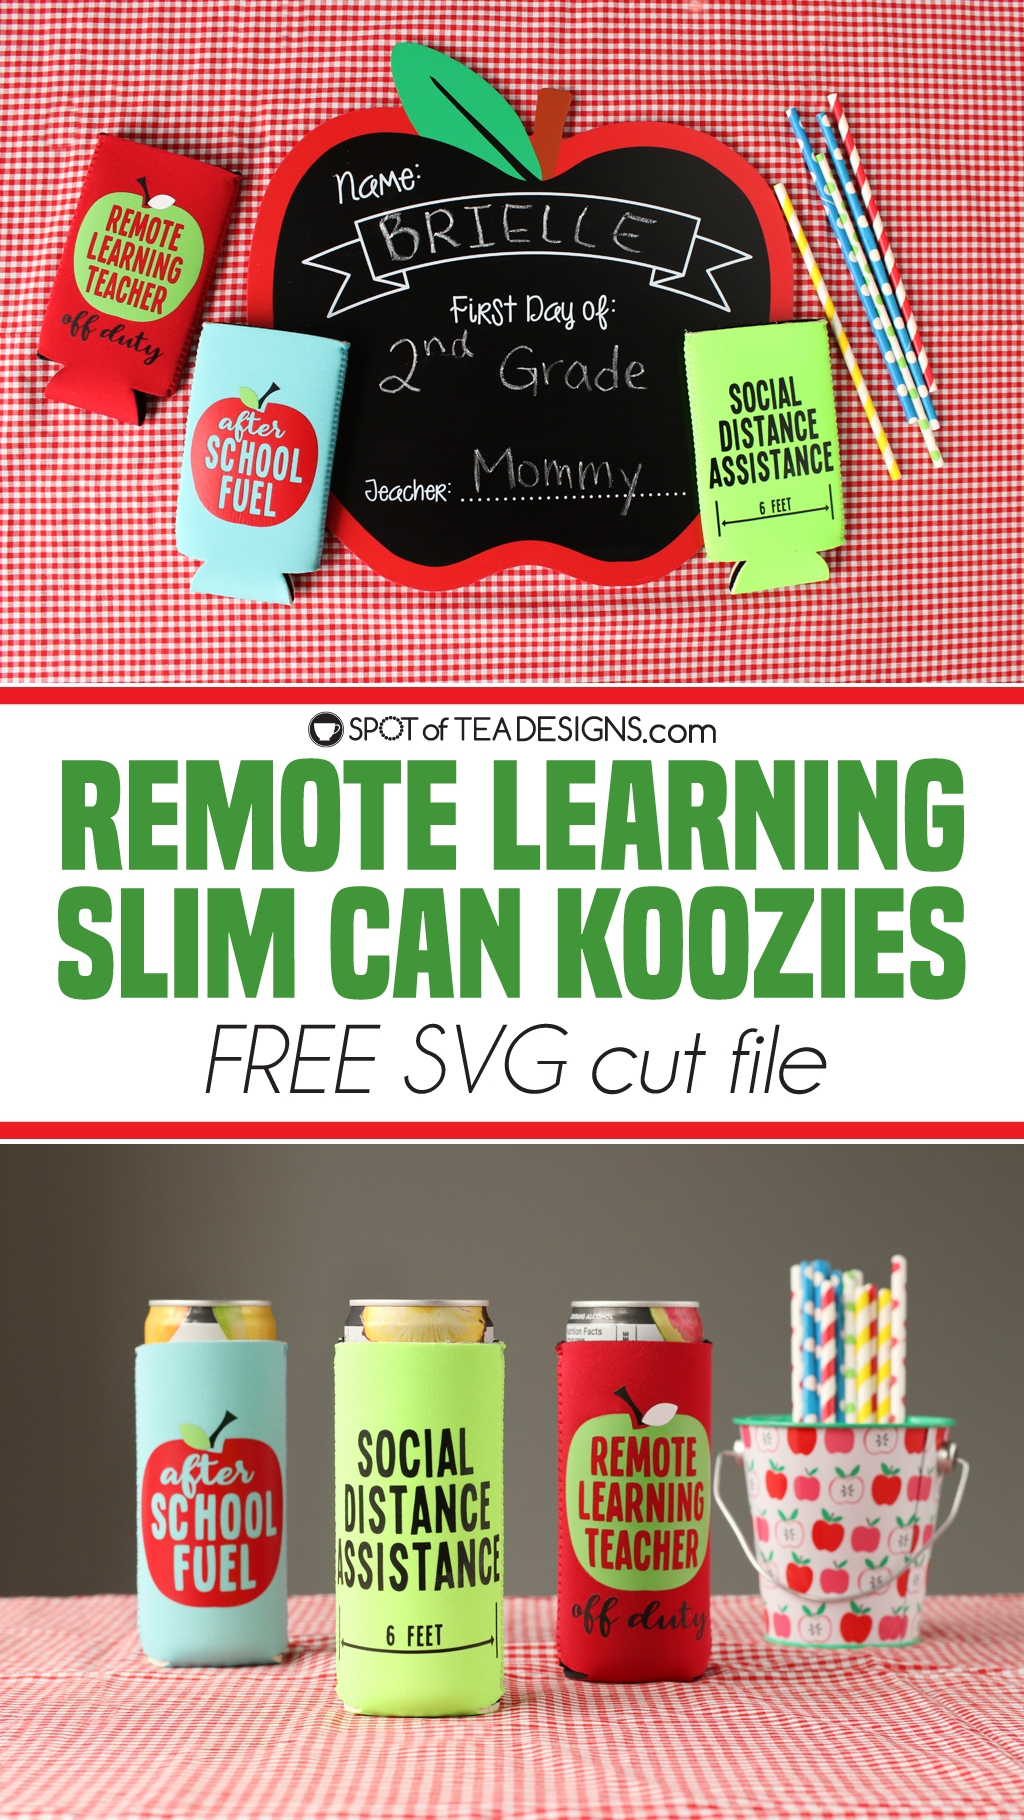 Remote learning can koozies - free svg cut file | spotofteadesigns.com